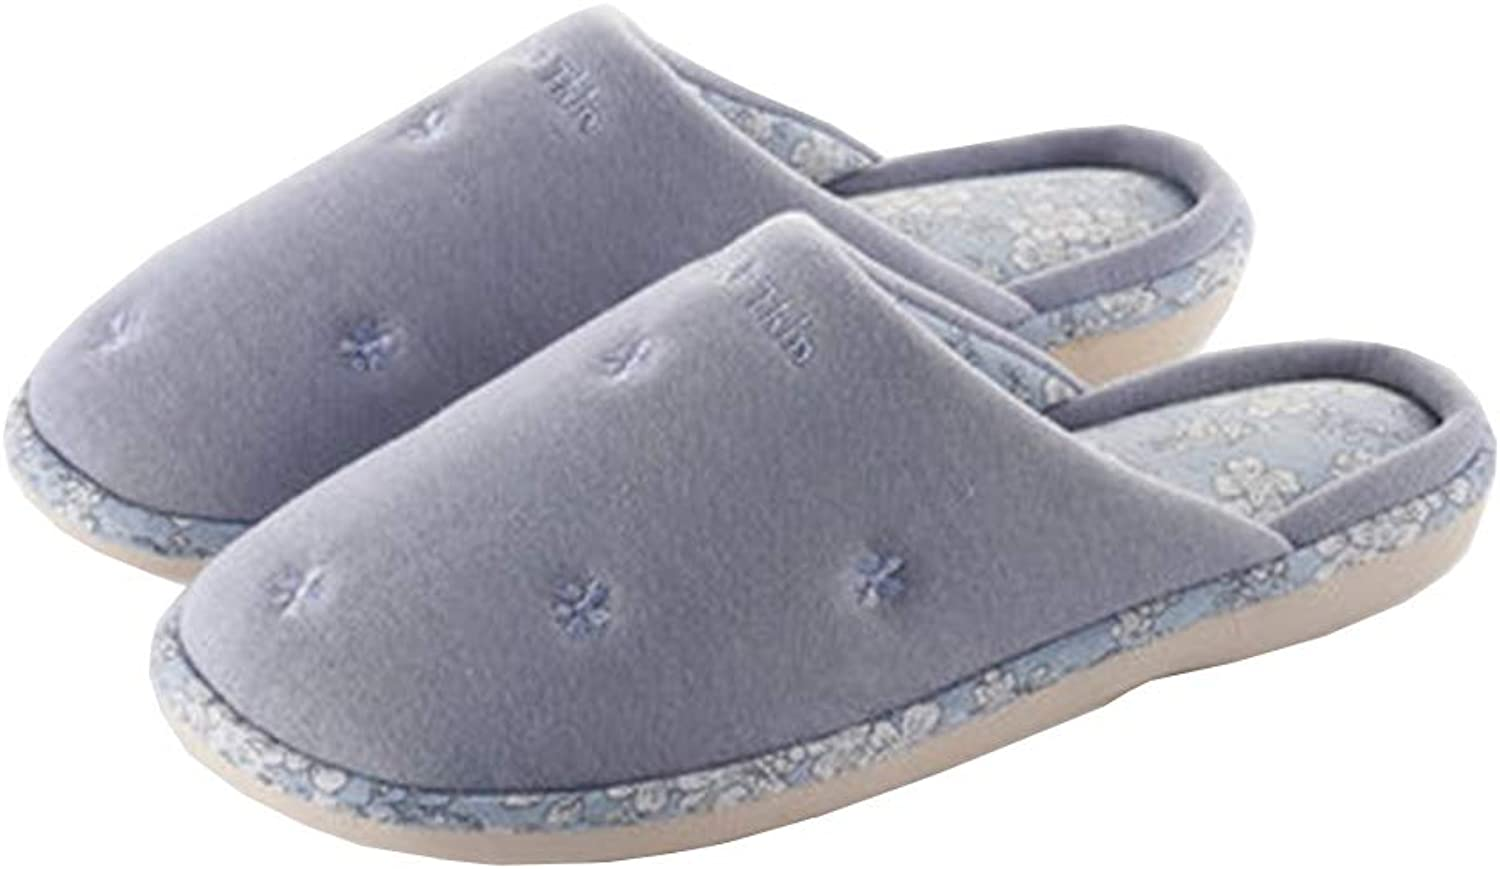 Autumn Winter Slippers,Ultra Soft Keep Warm Memory Foam Unisex Knitted Plaid Cloth Flip Flop,Washable Indoor shoes